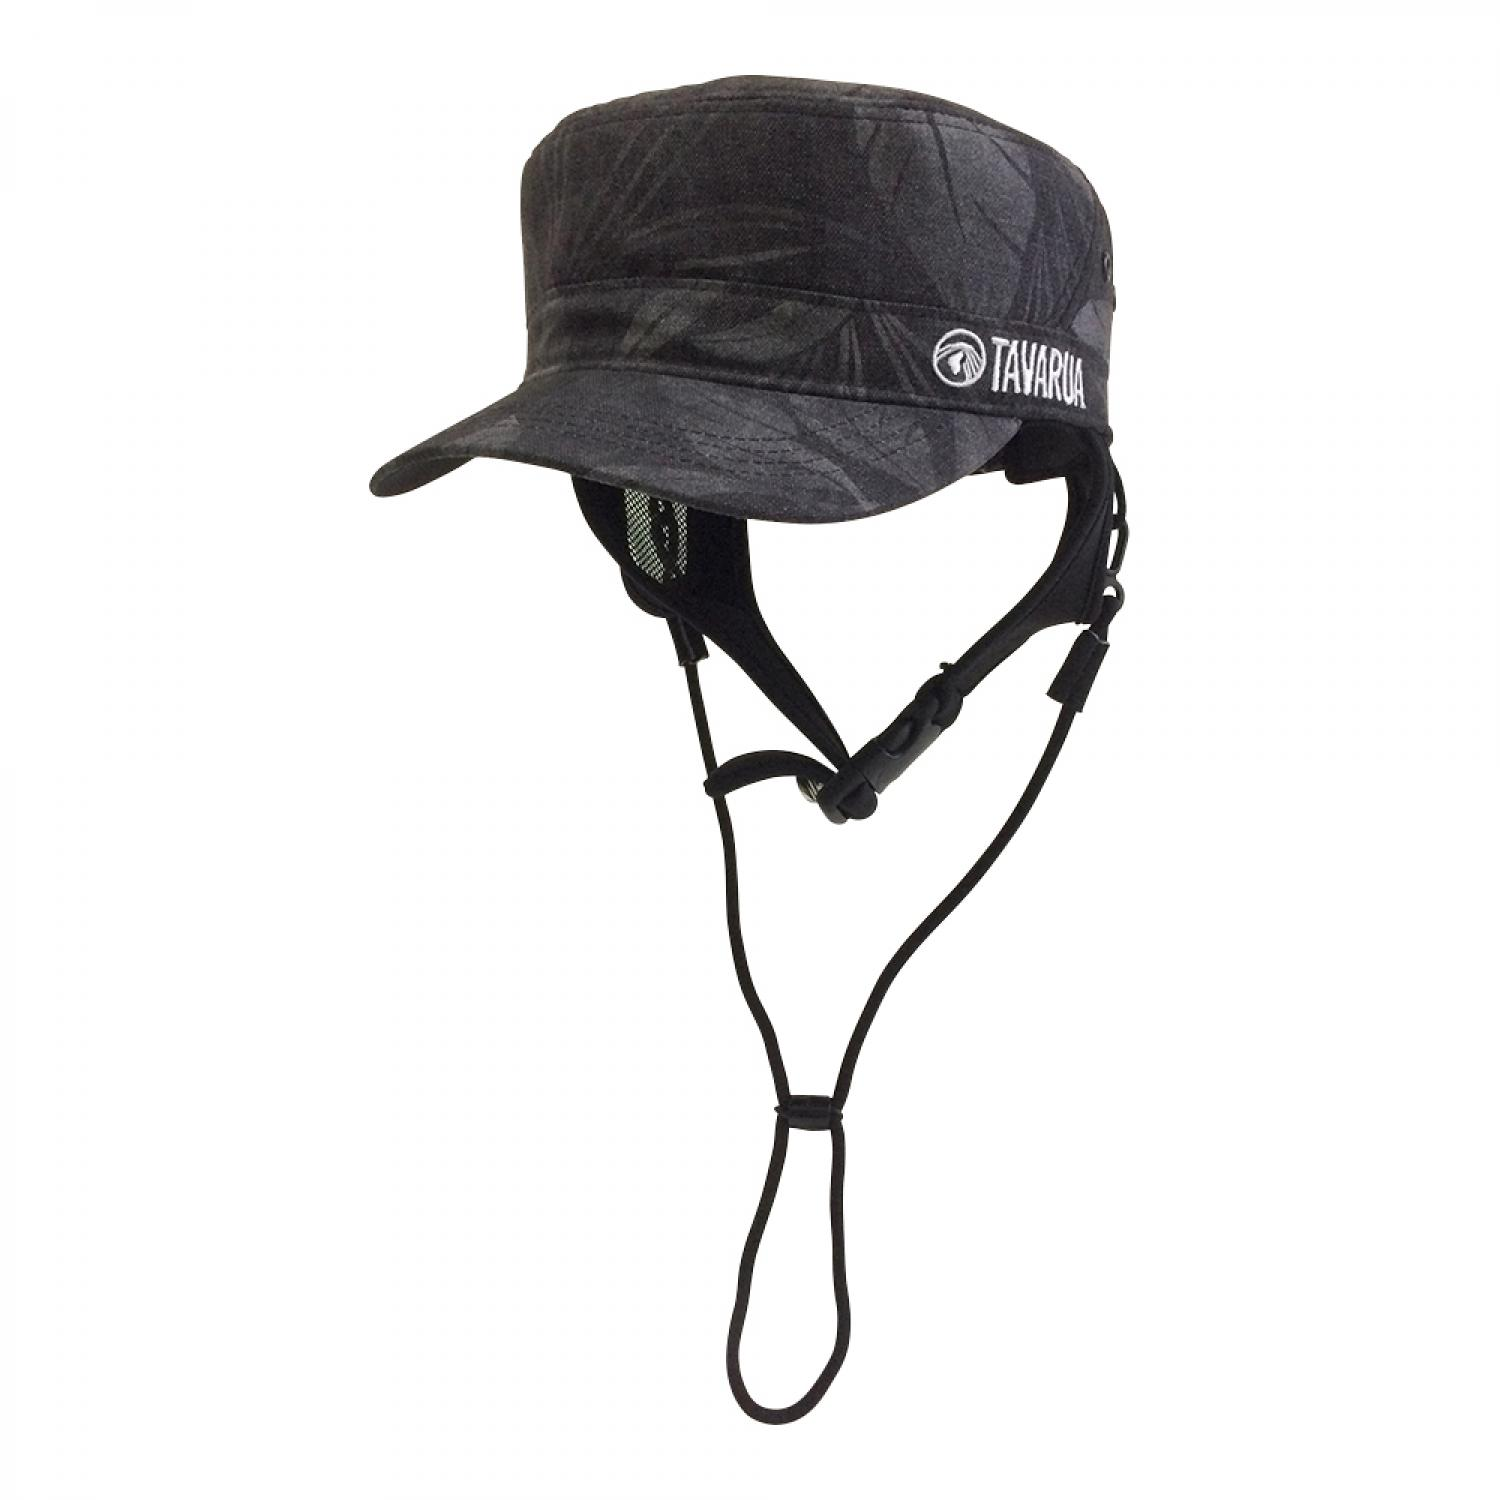 TAVARUA WARM SURF CAP LEAF VINTAGE BLACK